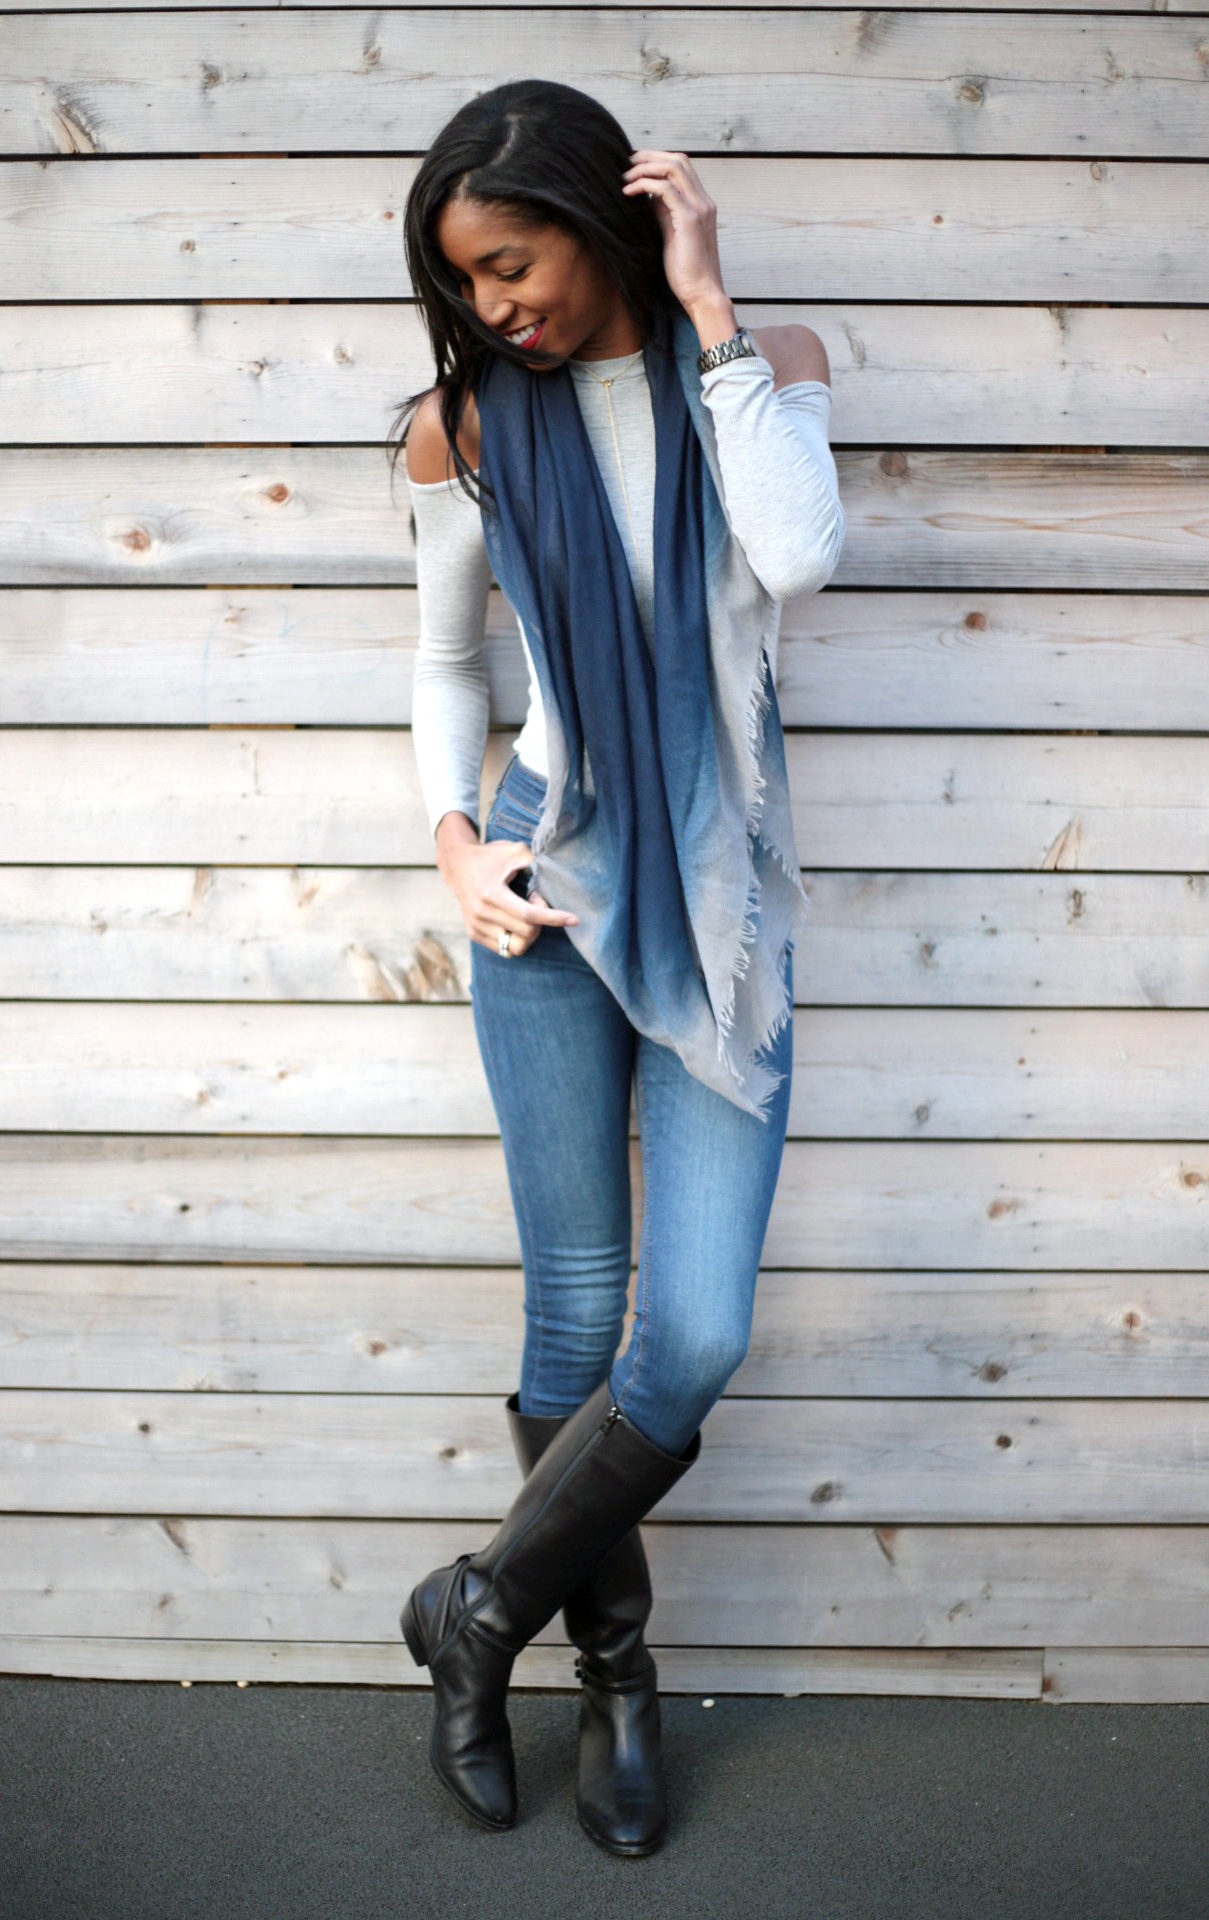 cold shoulder top, winter outfits, grey and navy outfits, winter style, coach boots, mom style